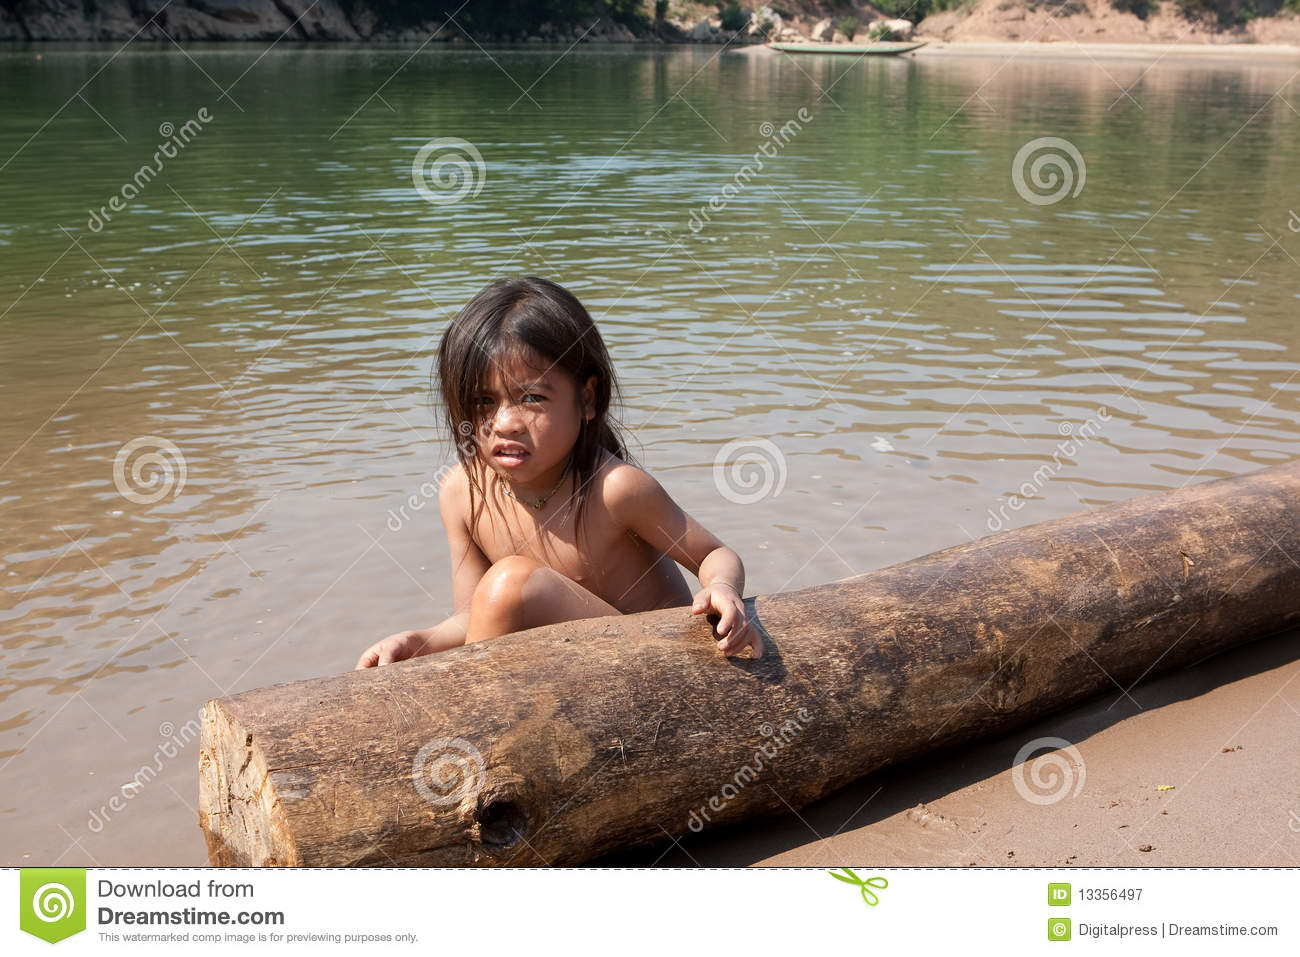 laos child girl bath Ban Na, Laos - April 10, 2018: Mother and child having a community bath  together in a river in the deep counstryside of Laos 211975666